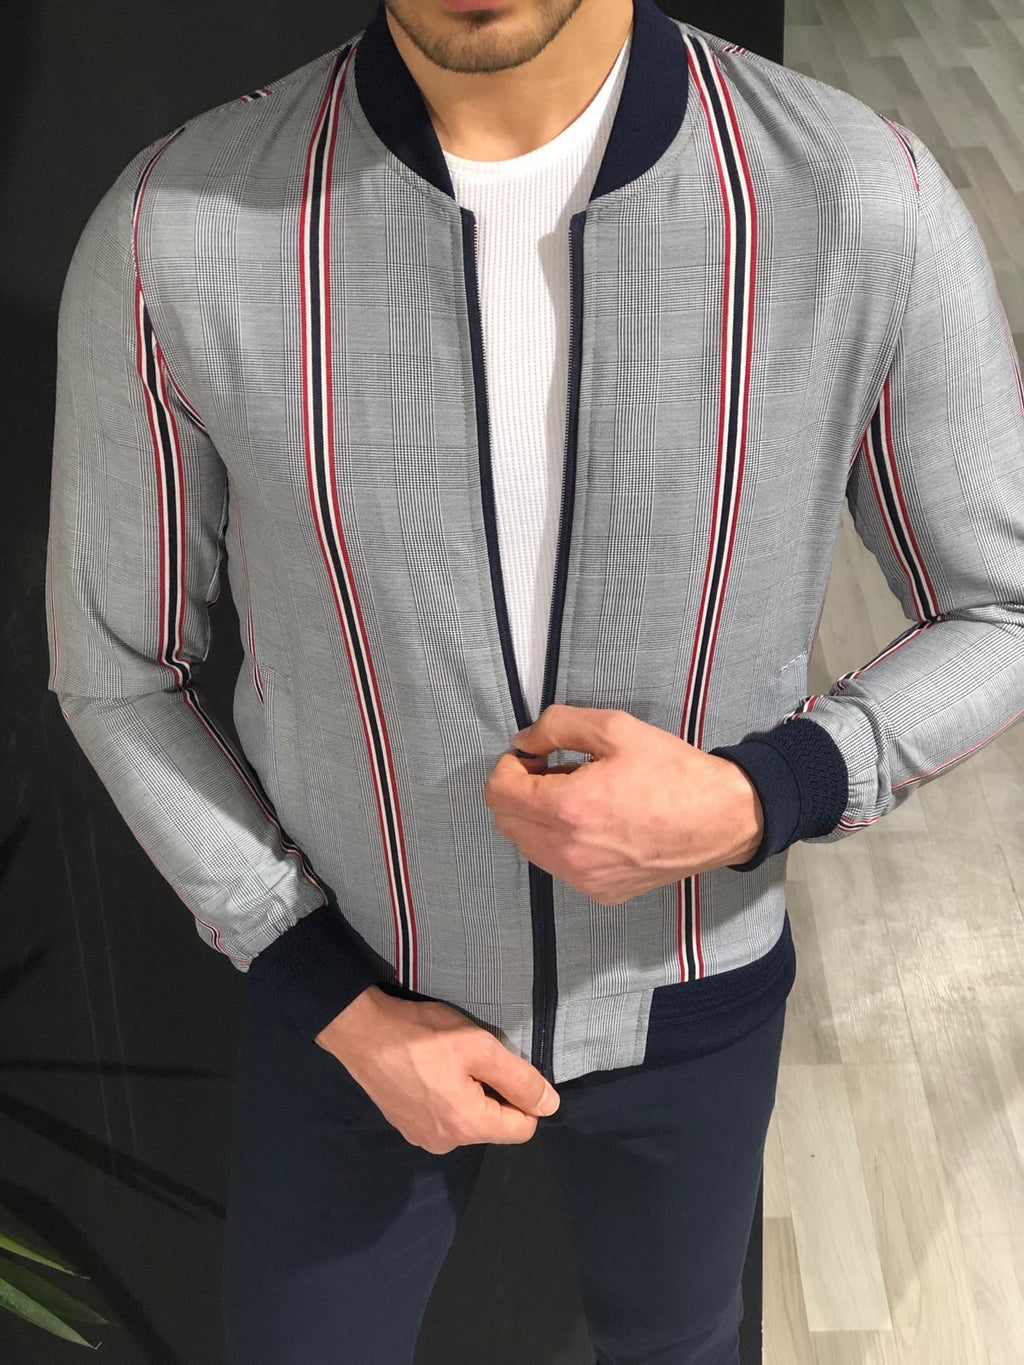 Faha Slim-Fit Colored Striped Jacket in Red